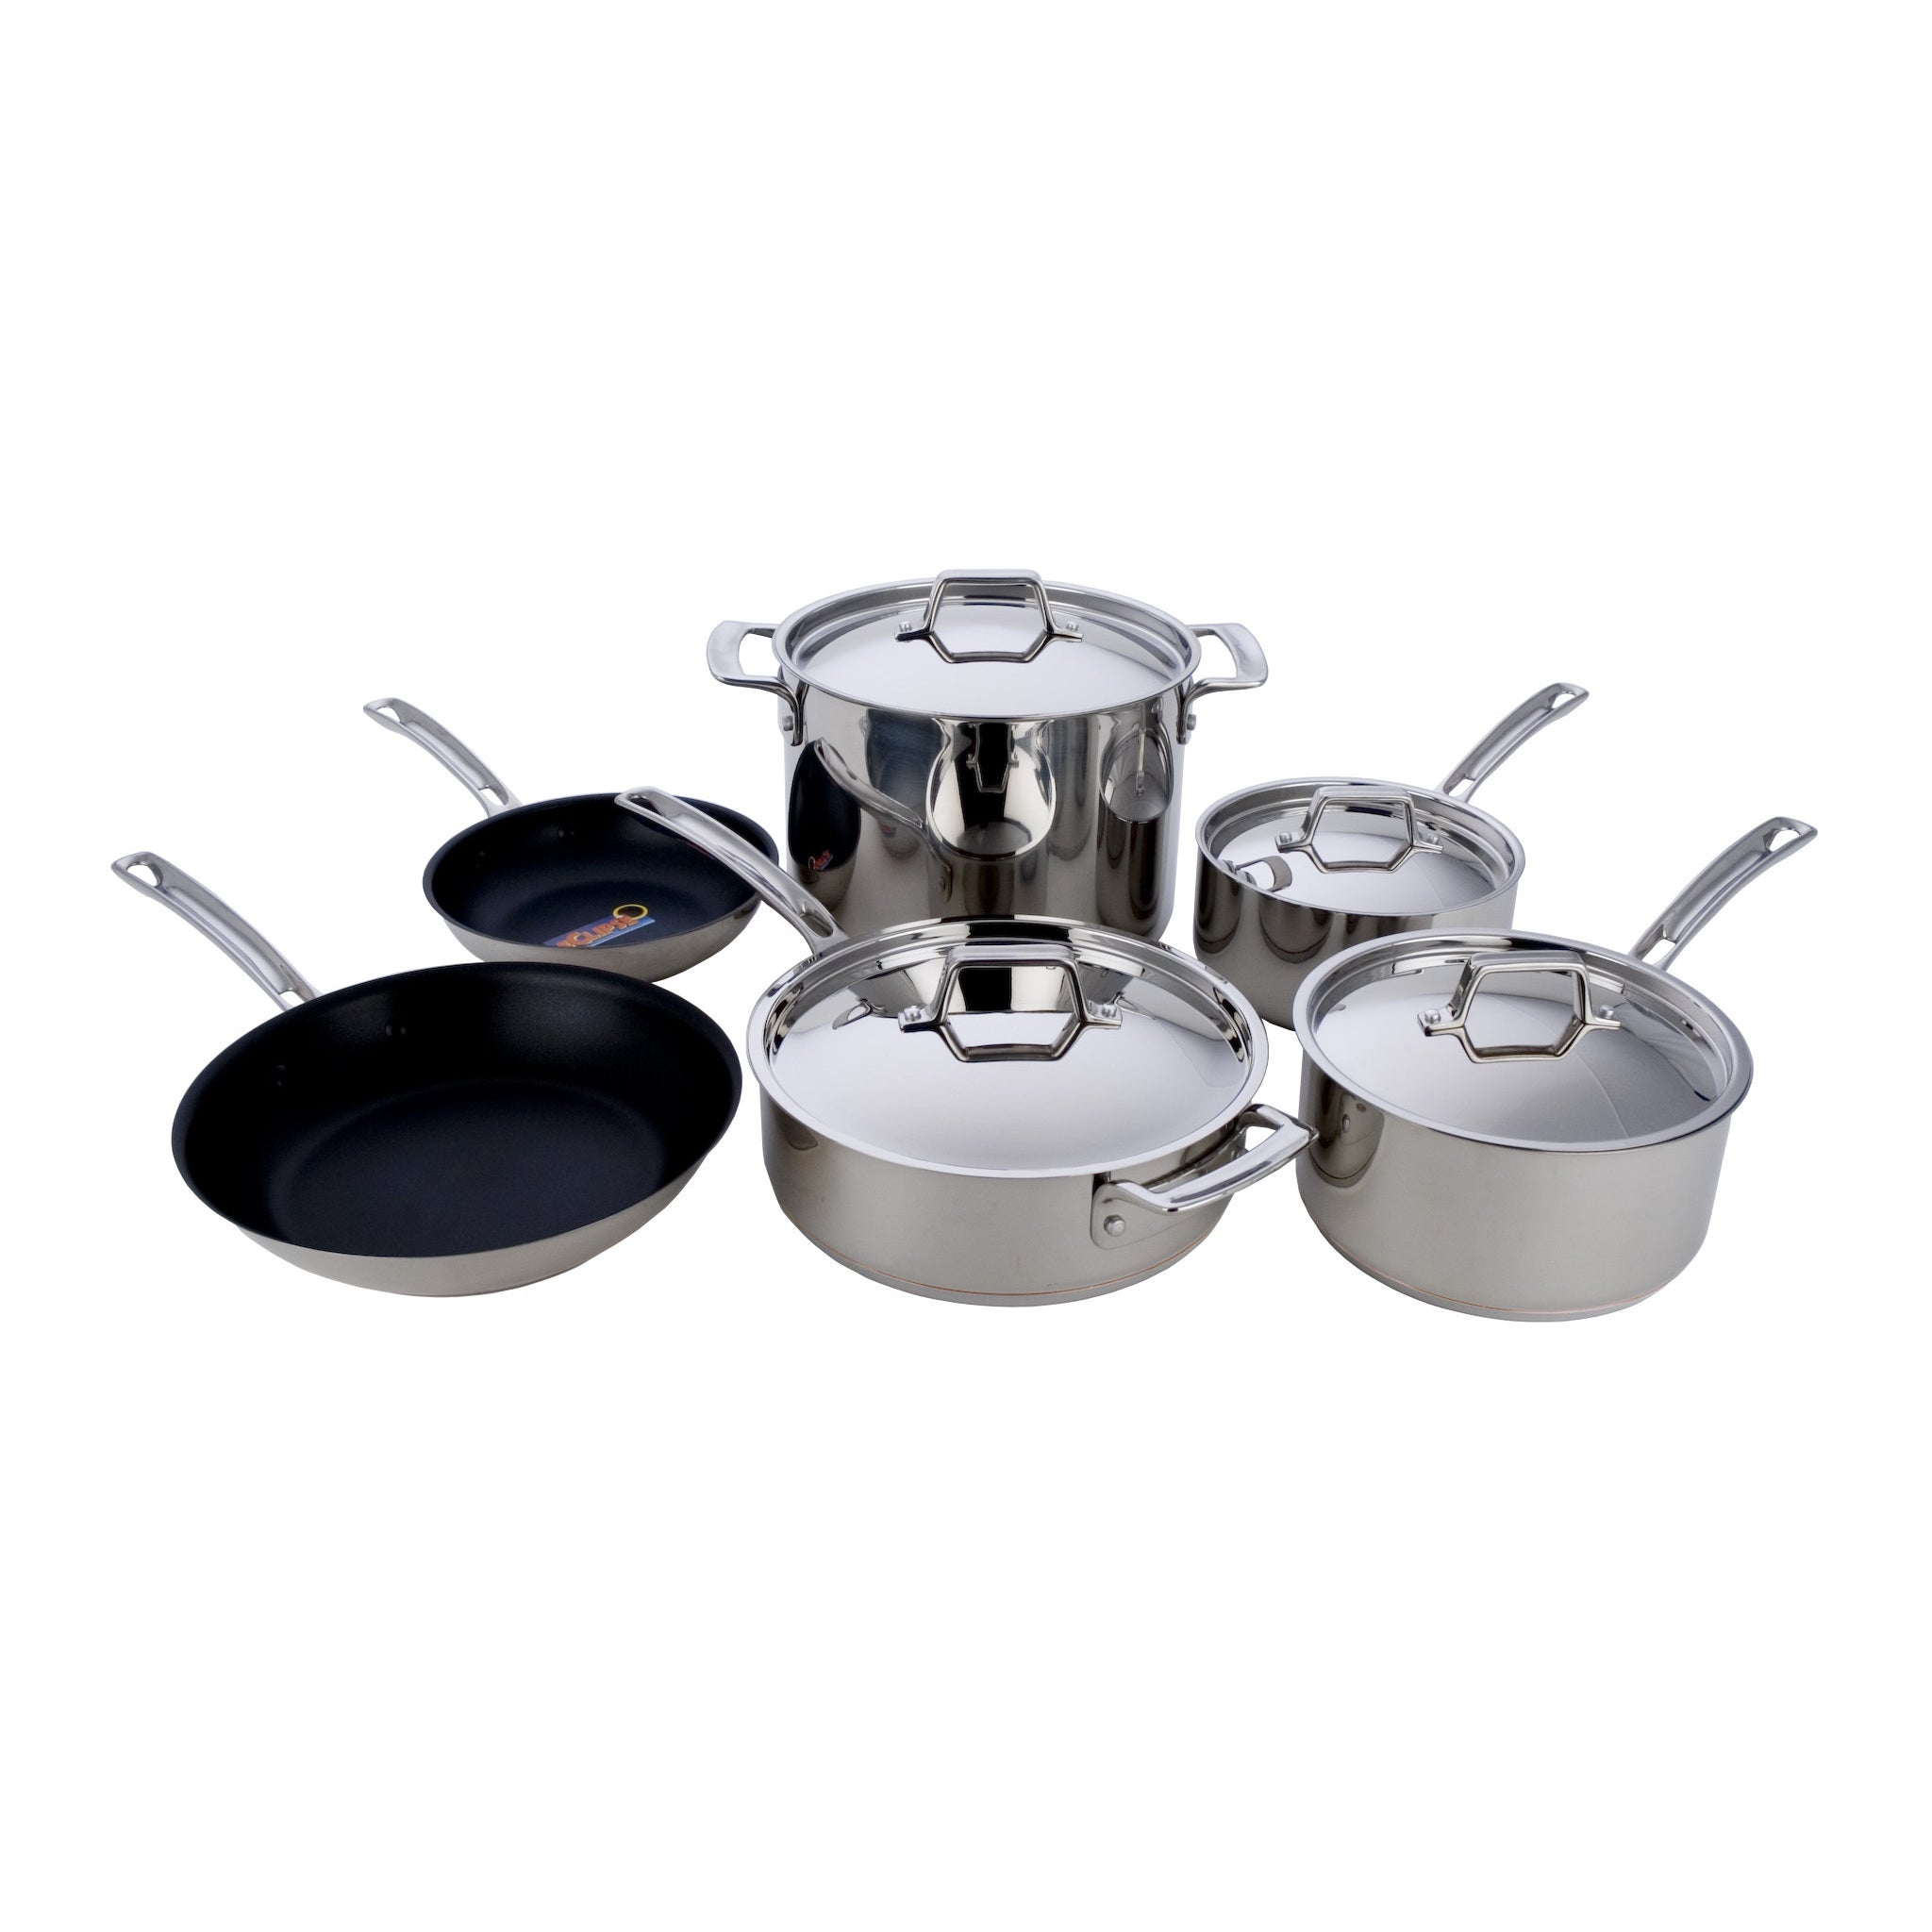 MIU France Stainless Steel (Silver) Cooper Core 10-piece ...